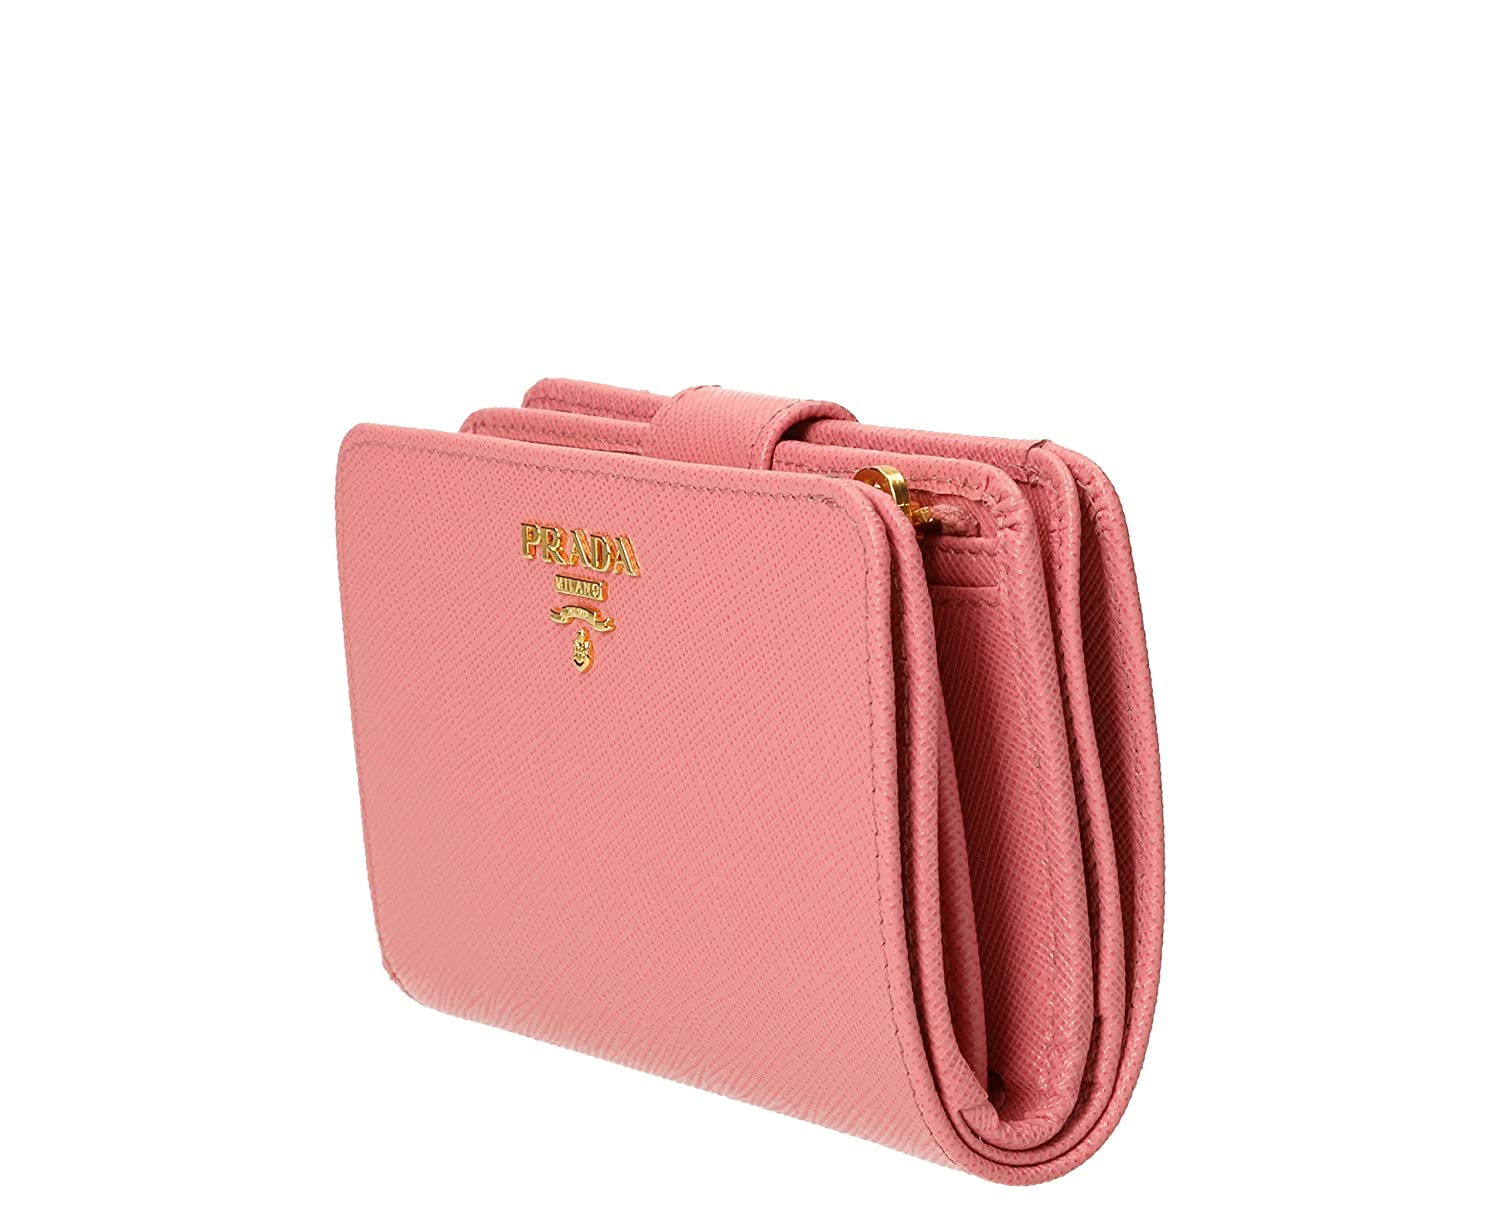 0dc103f8ef876 Prada Women s Saffiano Leather Wallet Pink at Amazon Women s Clothing store